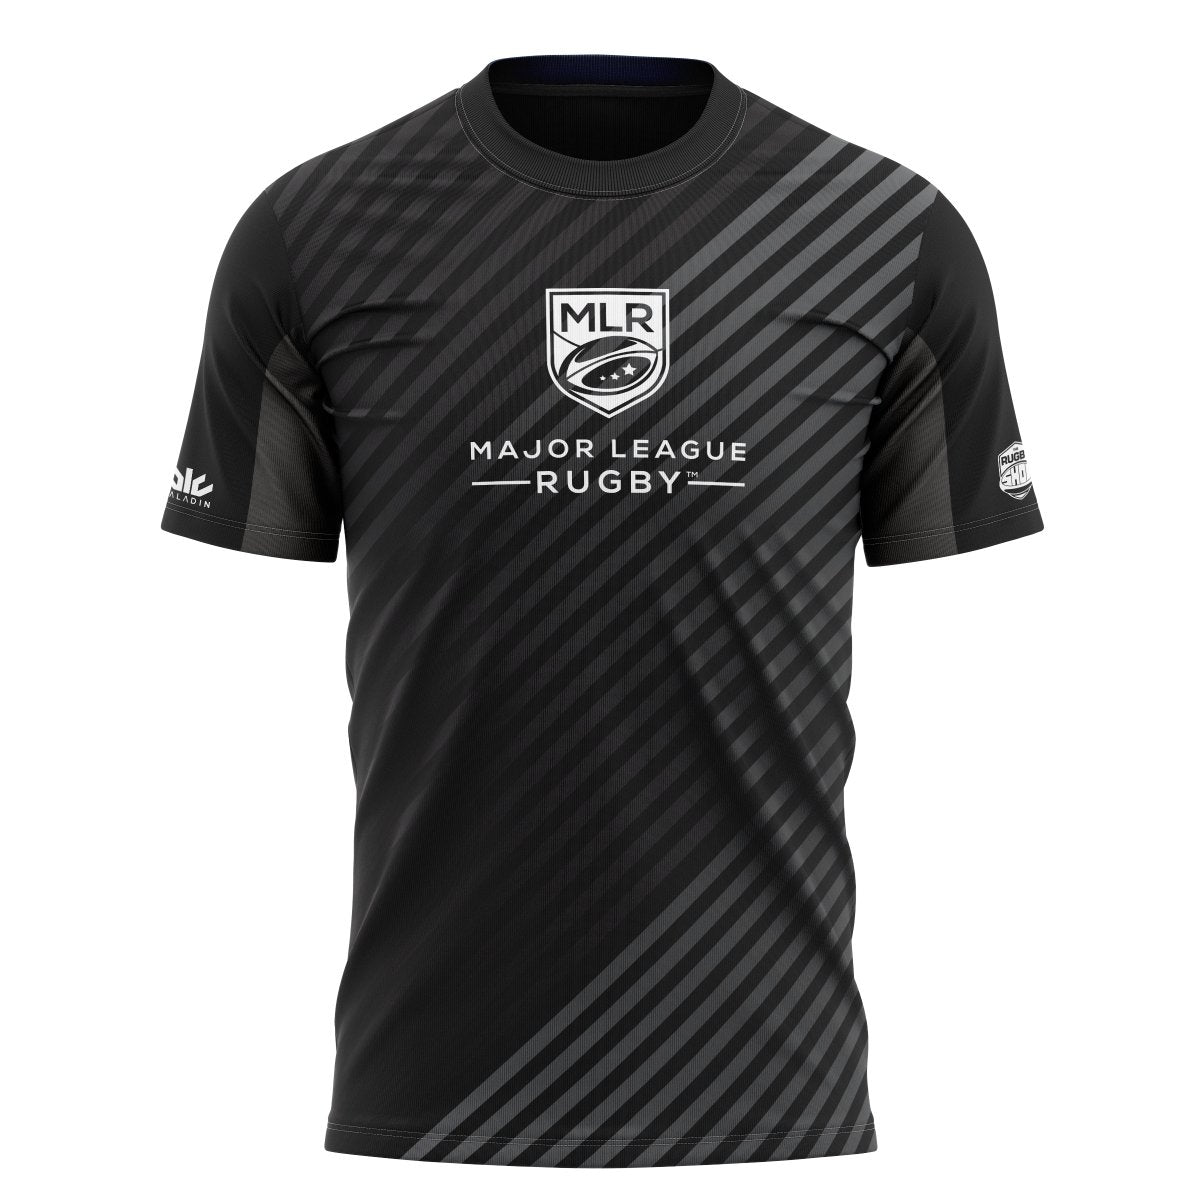 MLR 2021 Performance Tee - Men's Black - SHOPMLR.COM